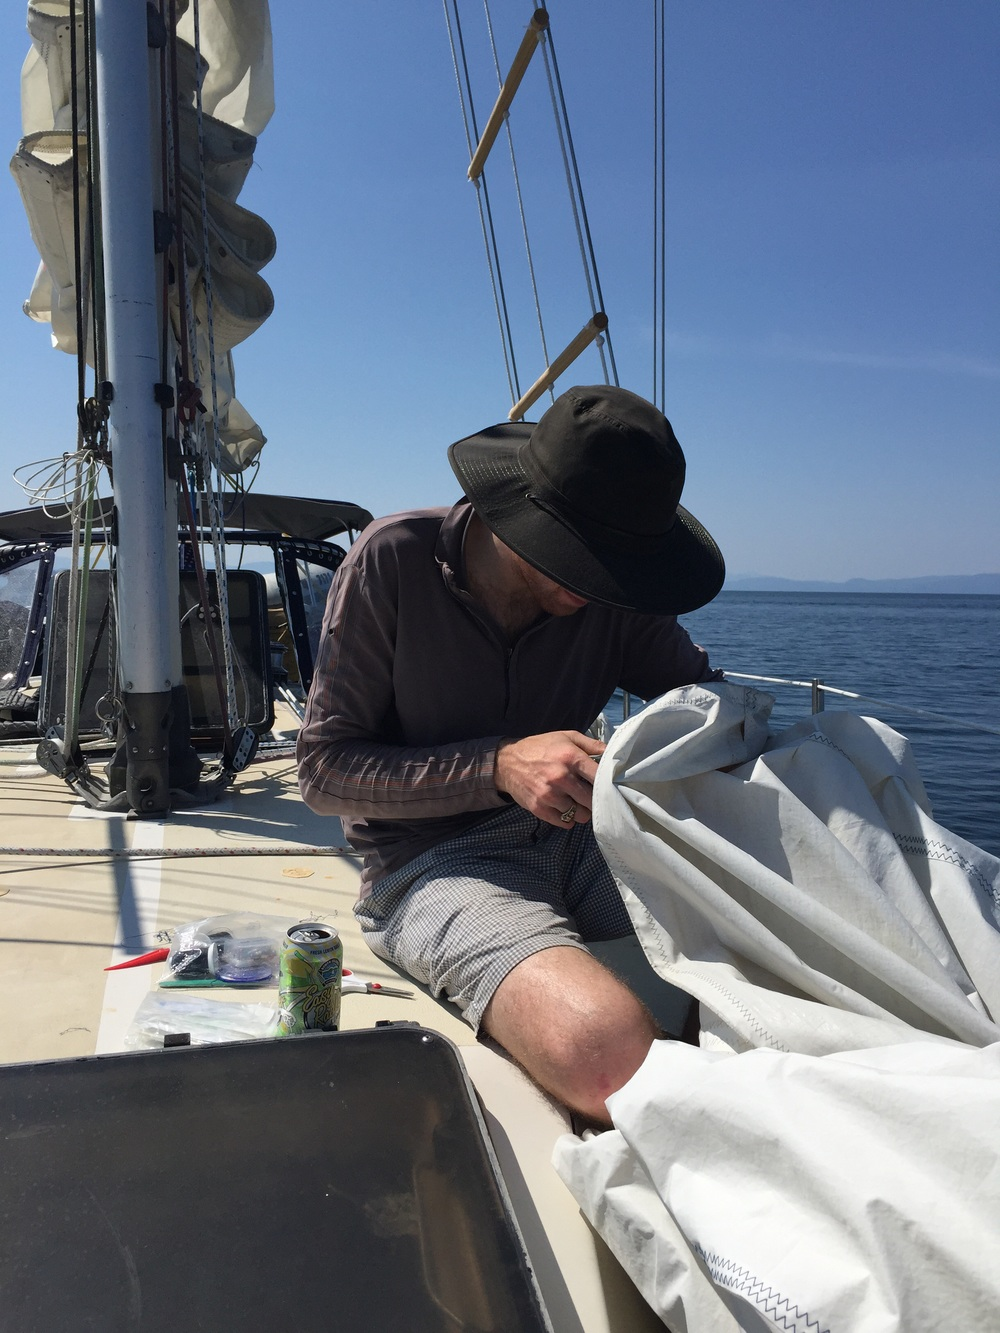 Kevin sews our ripped sail